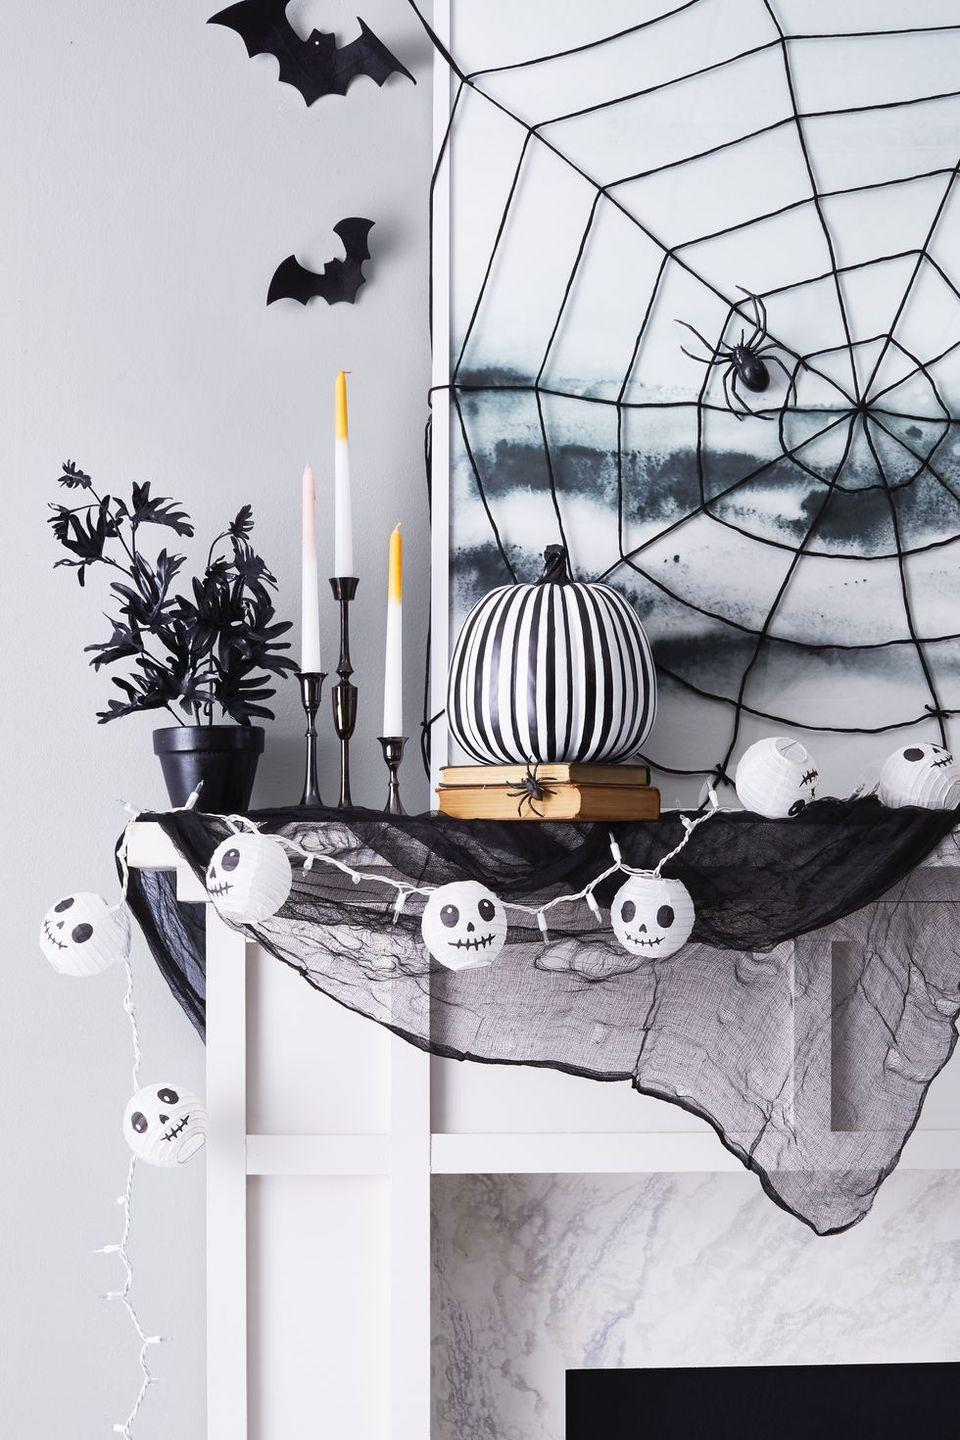 <p>Amp up a cobweb-covered mantel with a pumpkin decked out in black-and-white stripes. Pull the look together with candlesticks and string lights — with skulls, of course. </p>